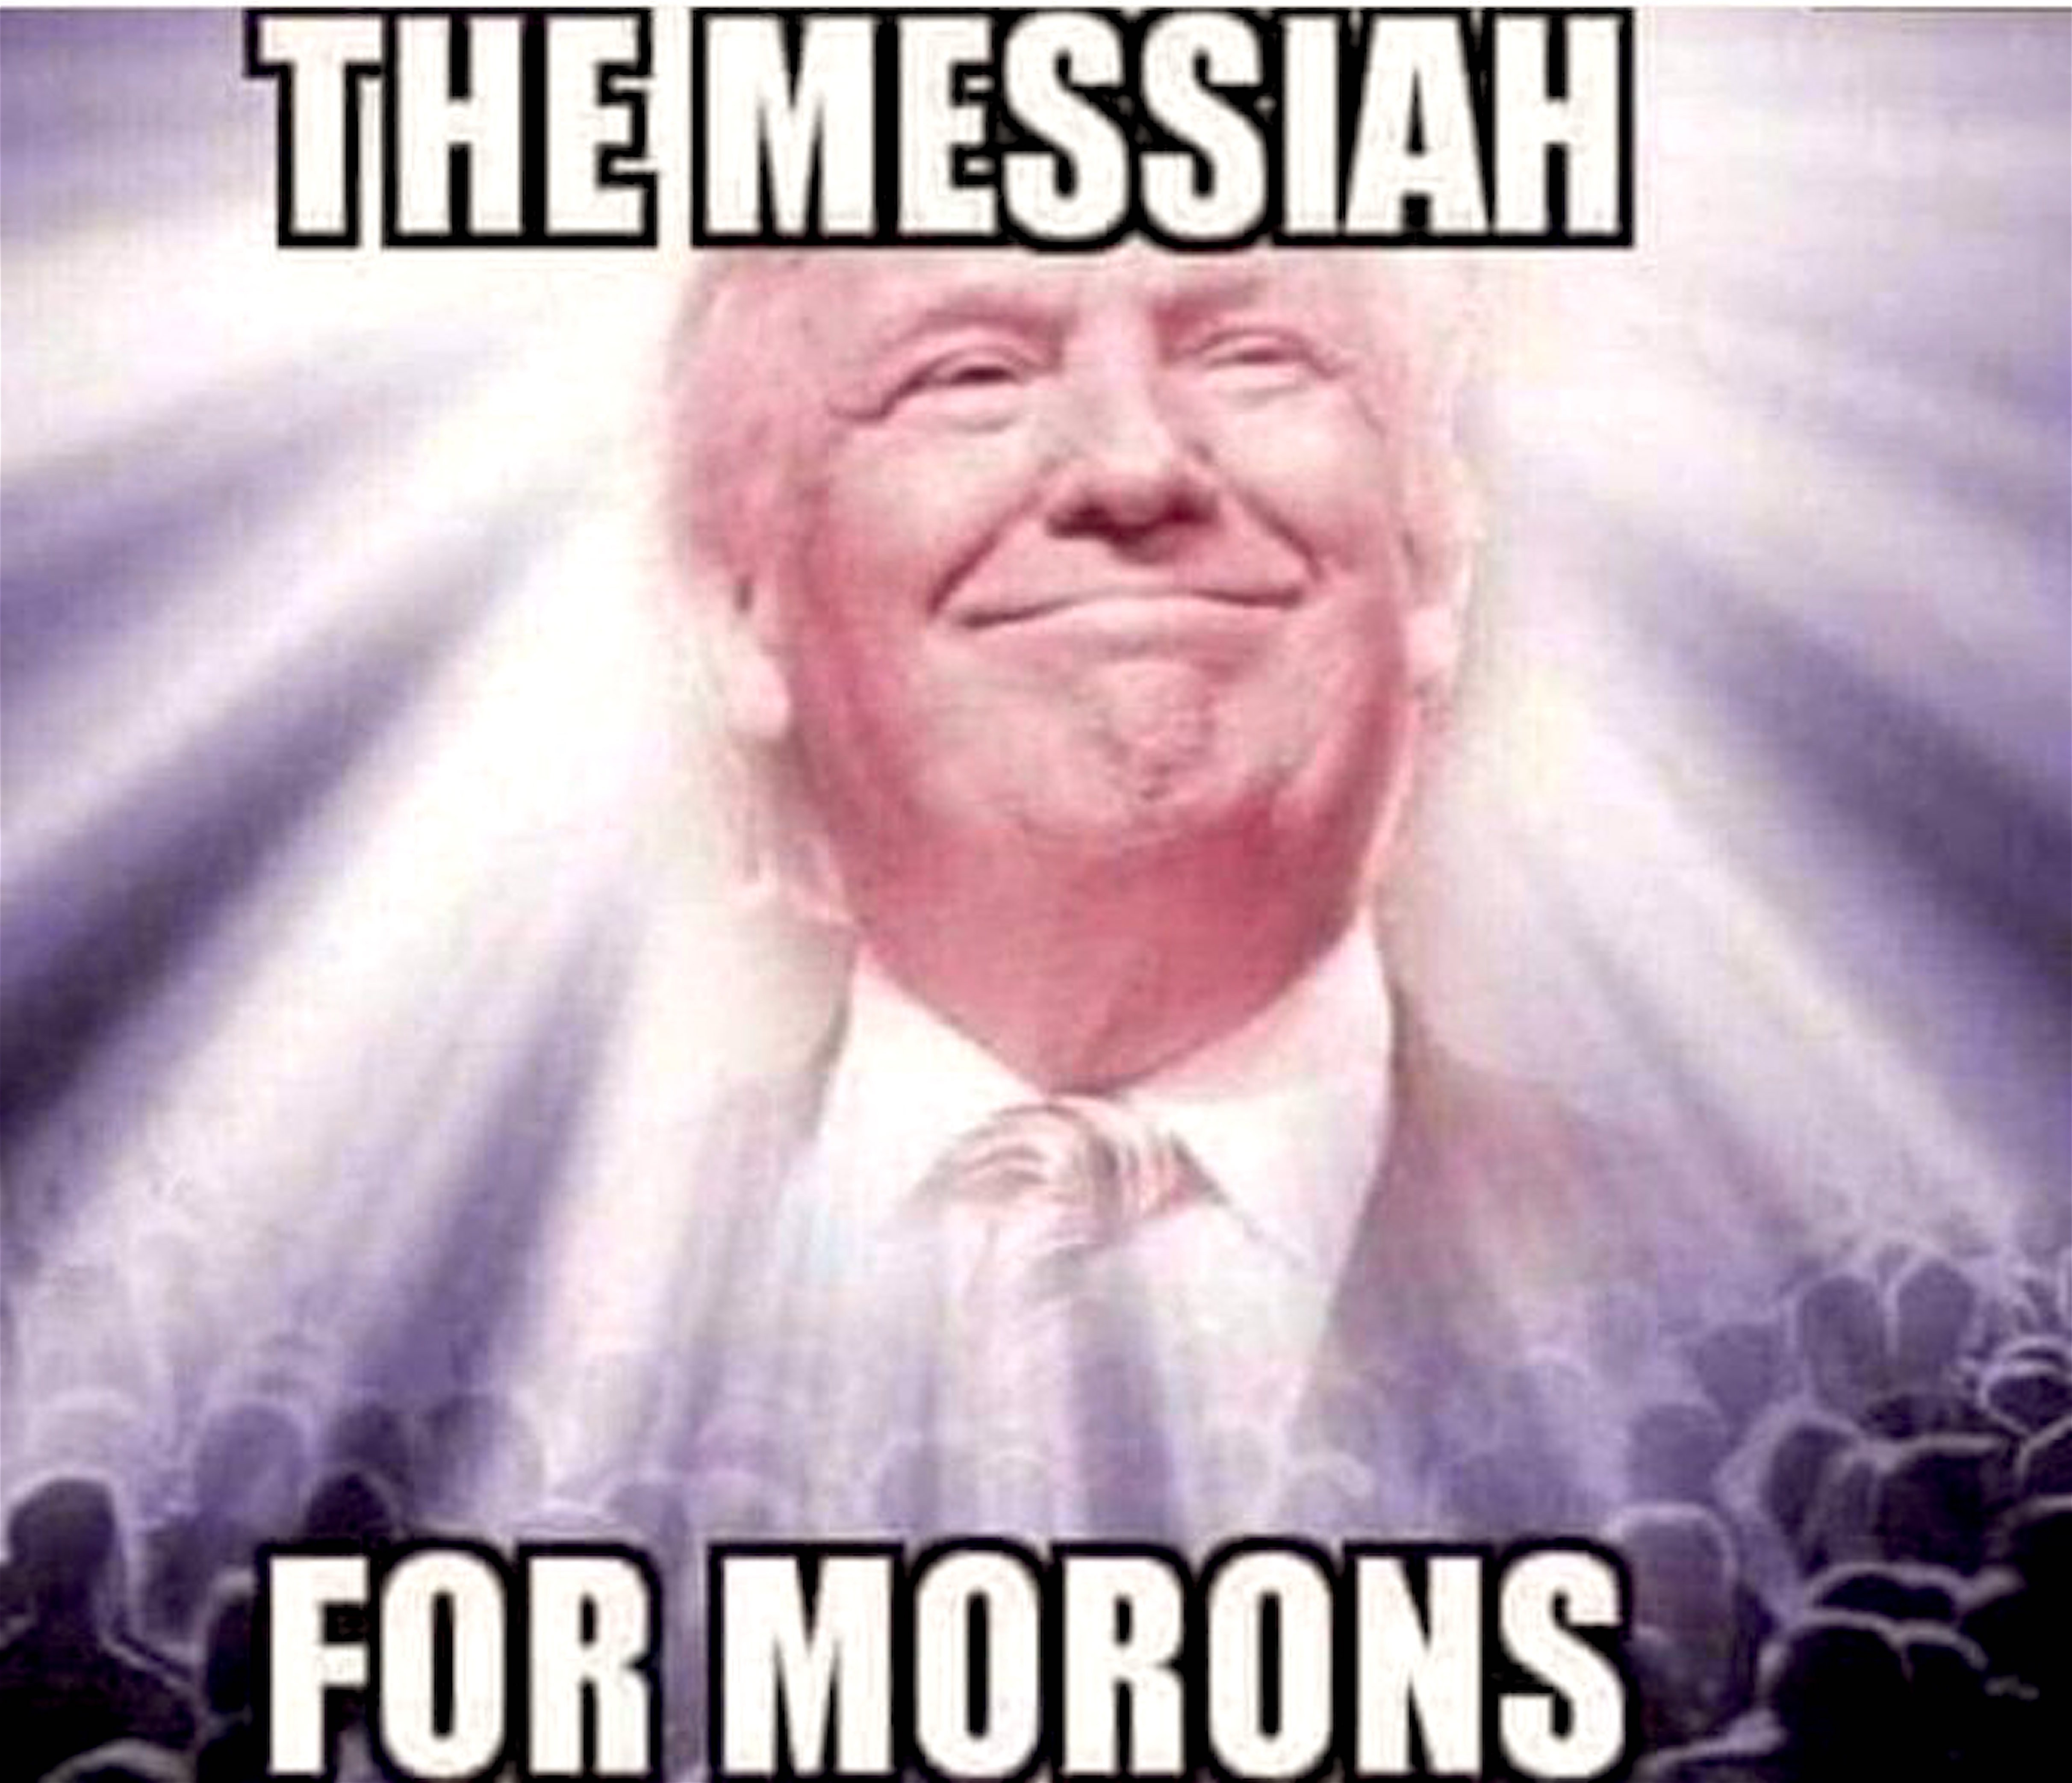 The Messiah for Morons (foto Twitter)